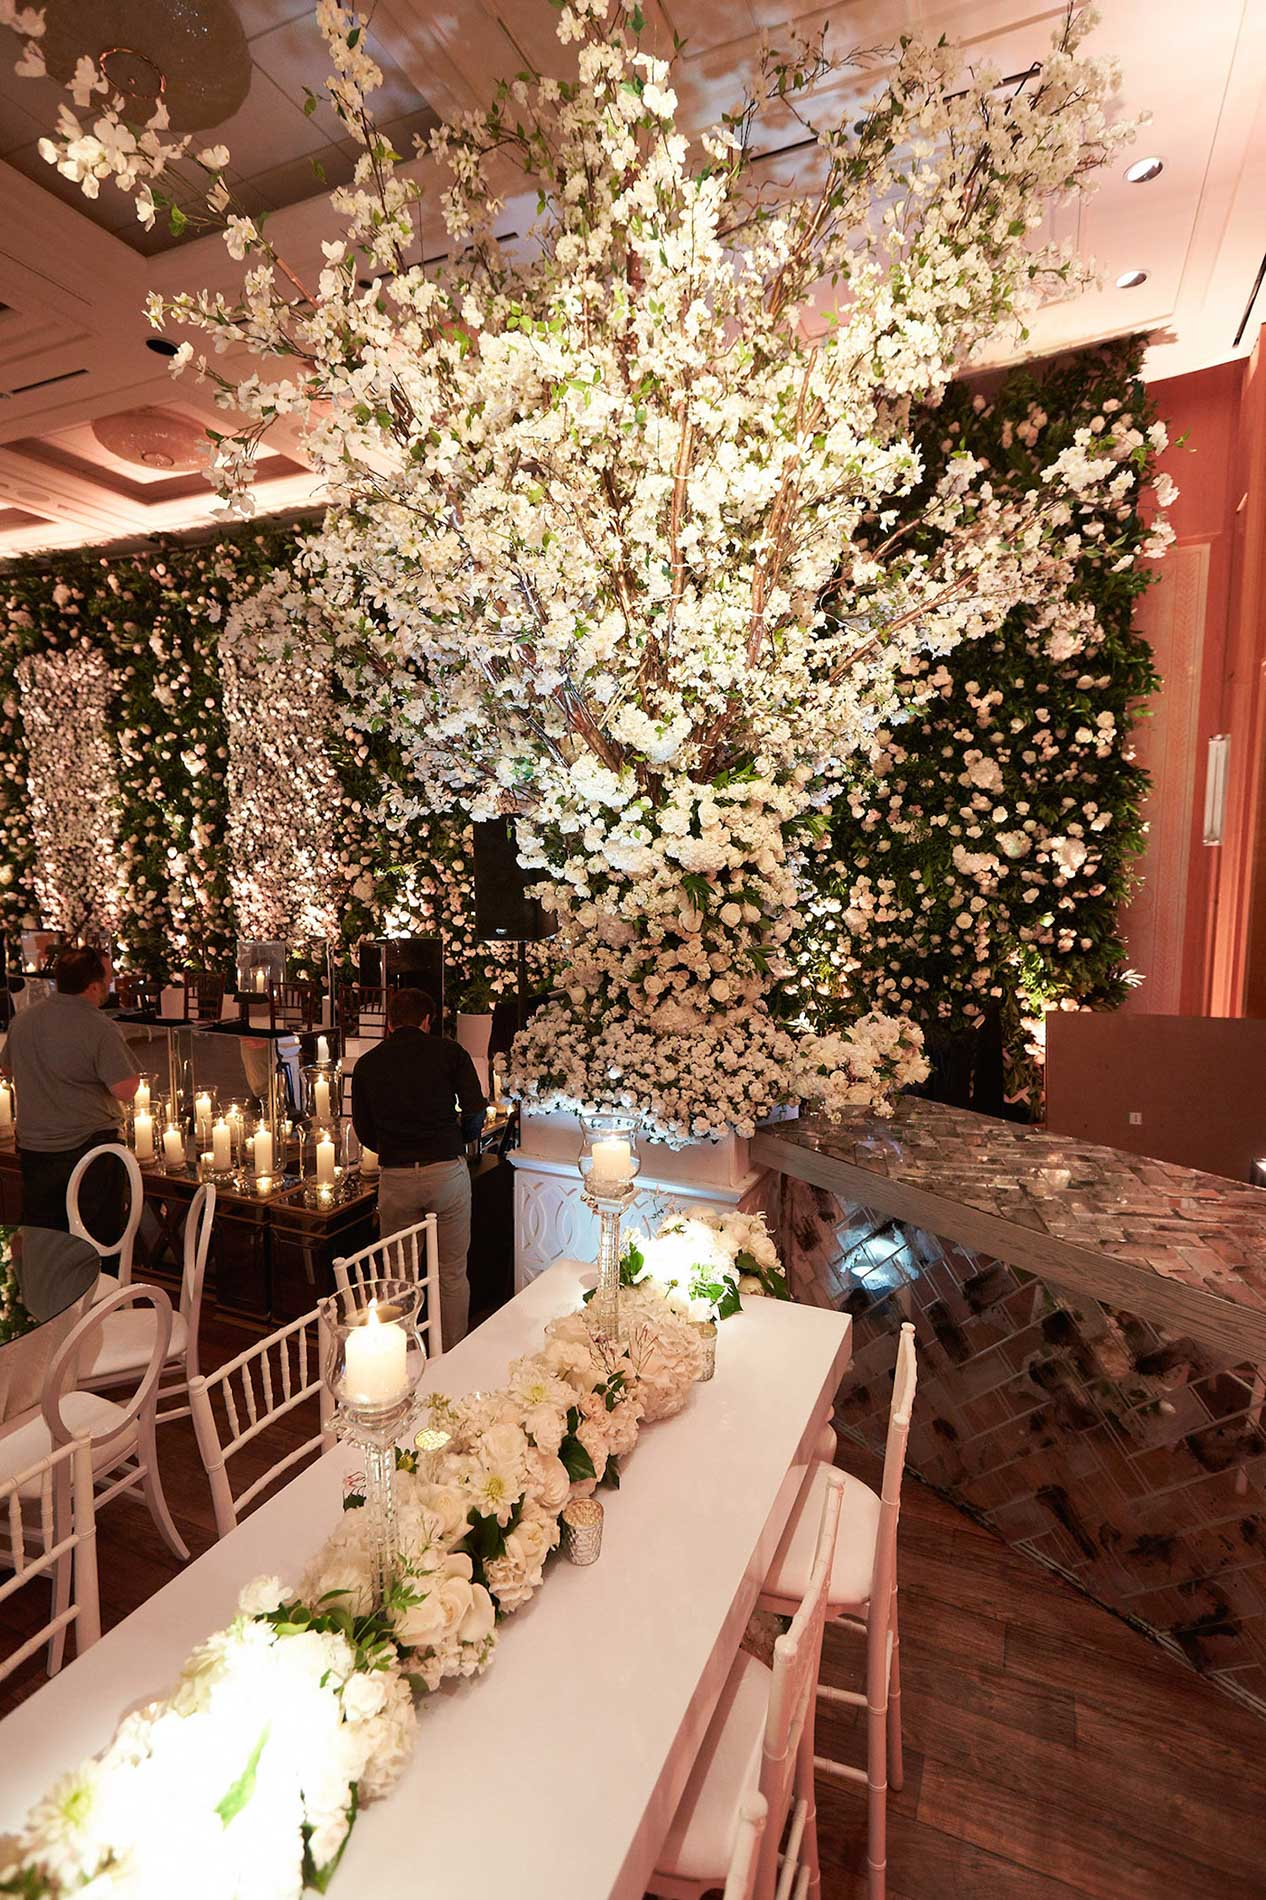 birch-bespoke-events-6.jpg